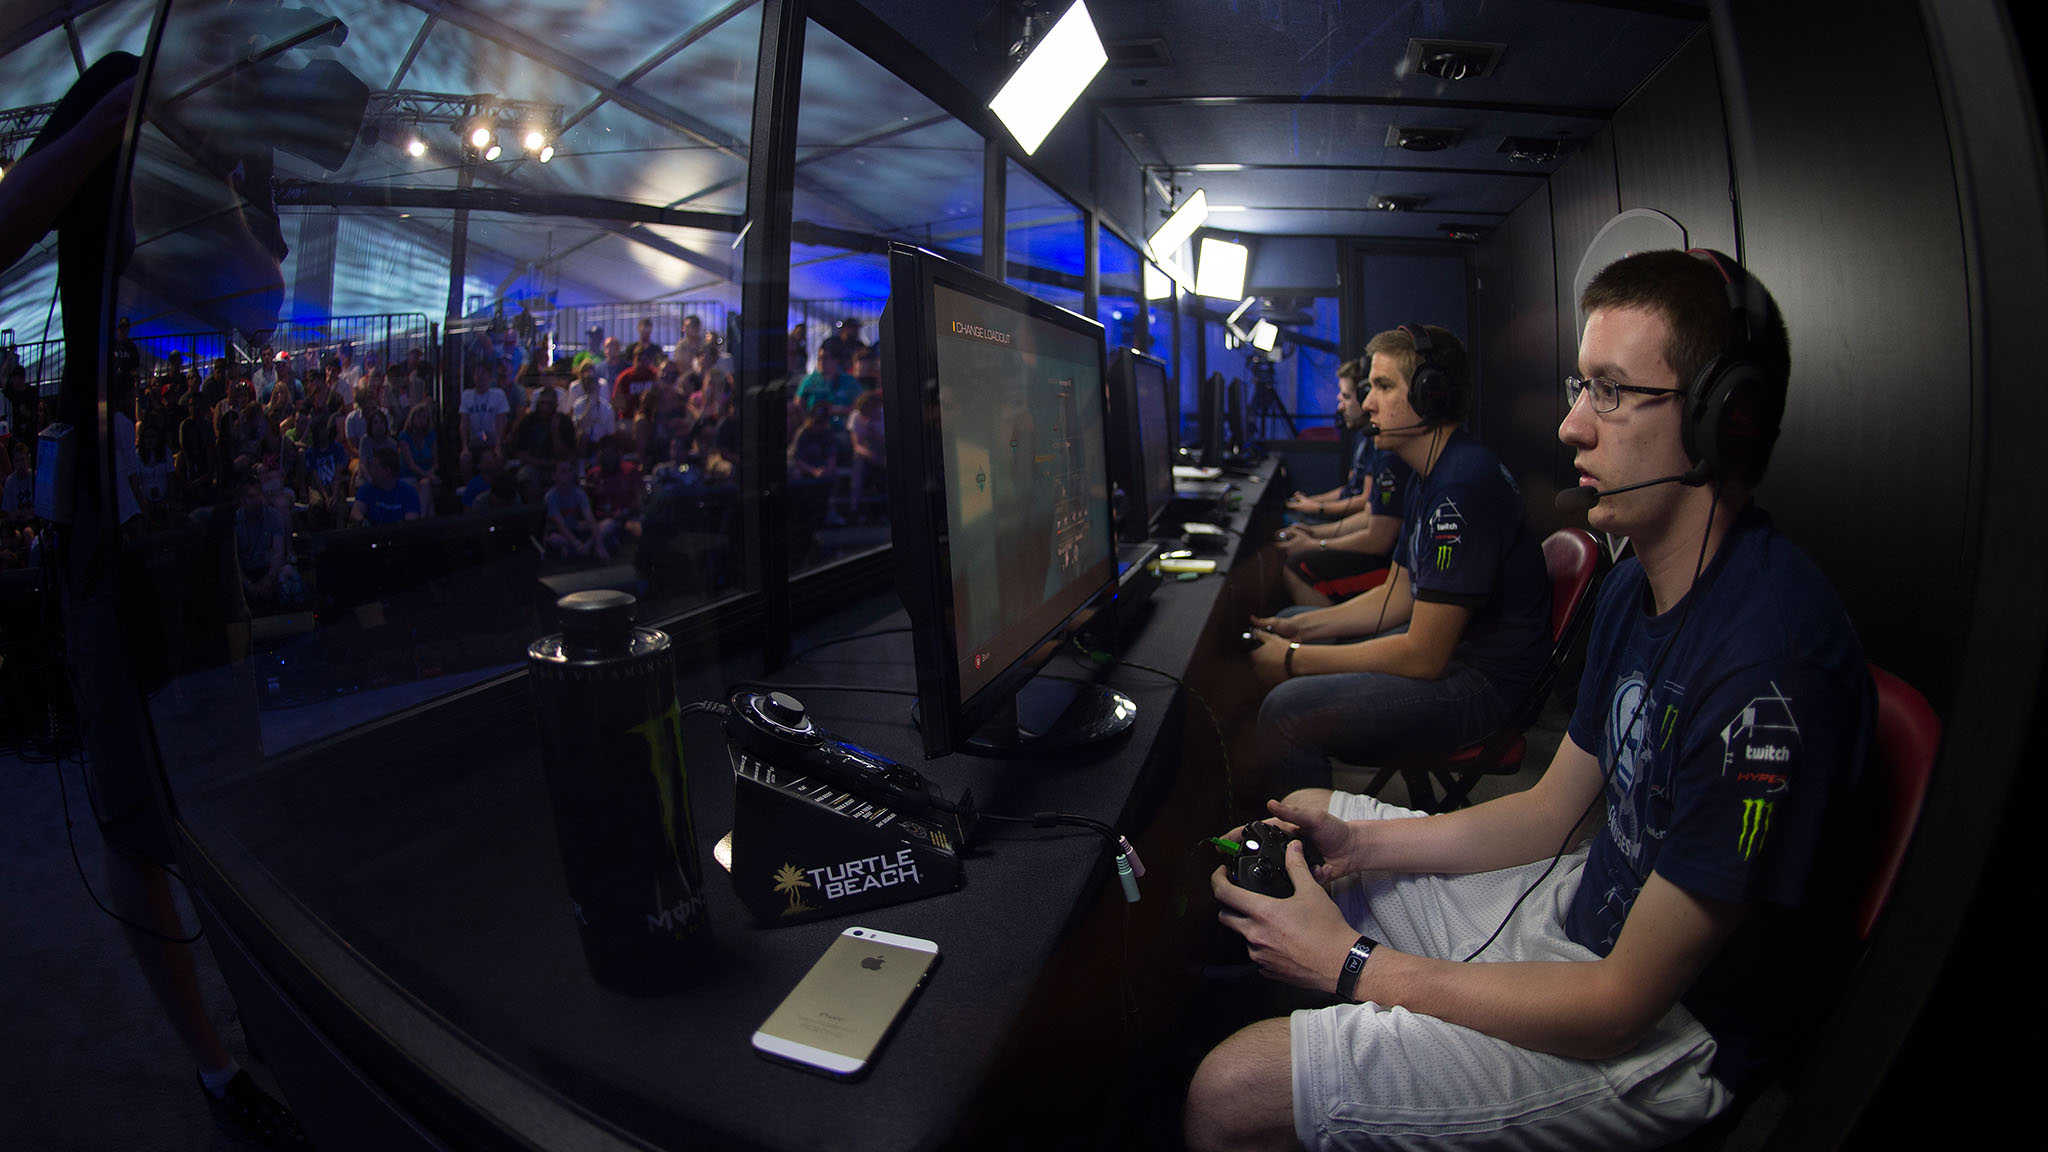 In a first for an X Games, video gamers competed for actual medals in a Call of Duty: Ghosts tournament hosted by Major League Gaming at X Games Austin. brbrInside a tent in the festival area, gamers threw virtual bombs, fired animated bullets and coordinated attacks in frenetic team matches.